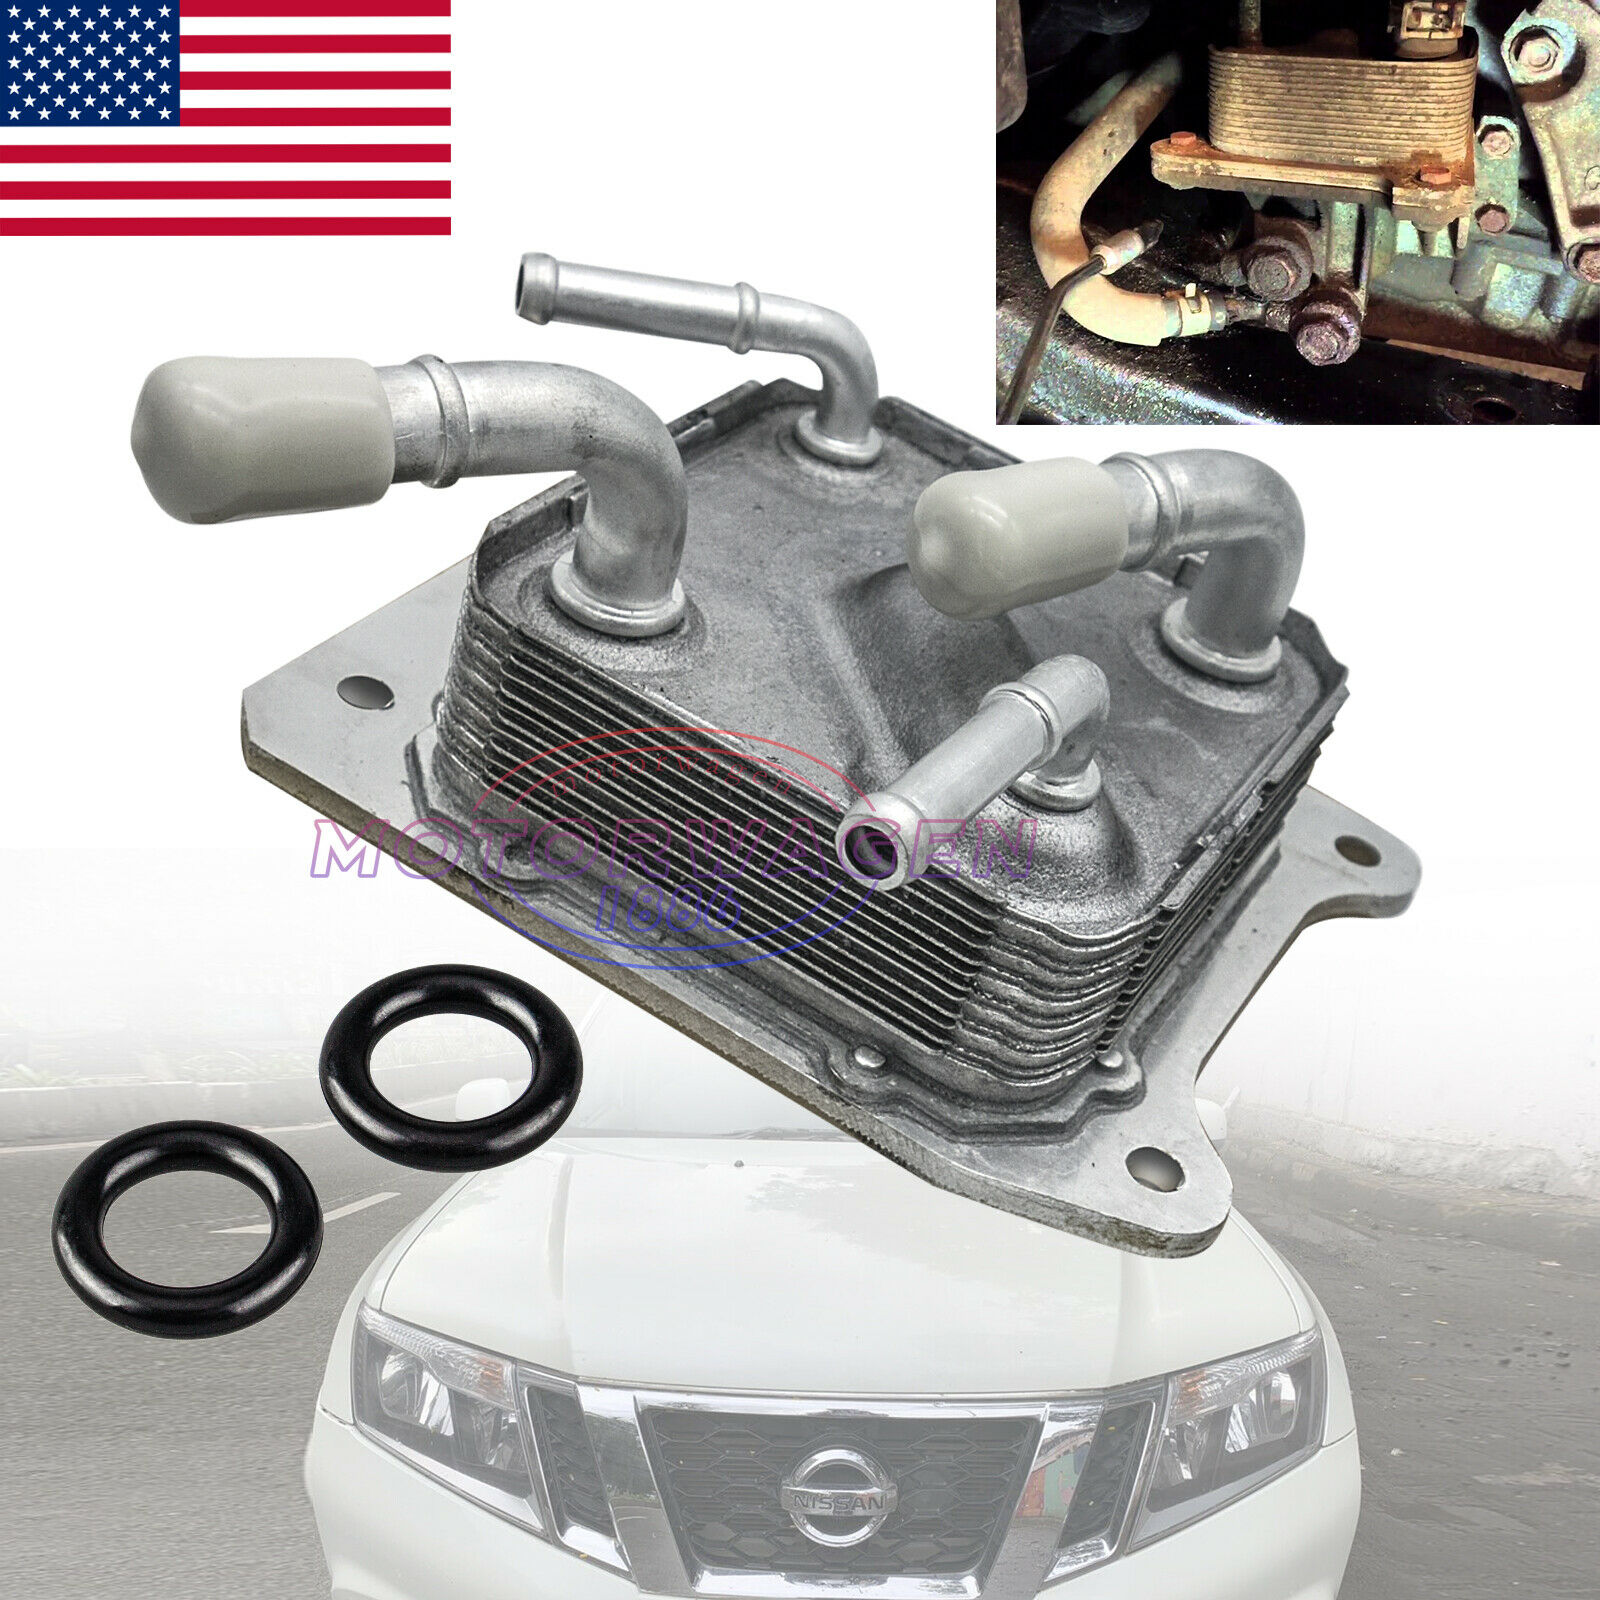 21606-28X0B XtremeAmazing Transmission Oil Cooler with O-rings for 2013-2017